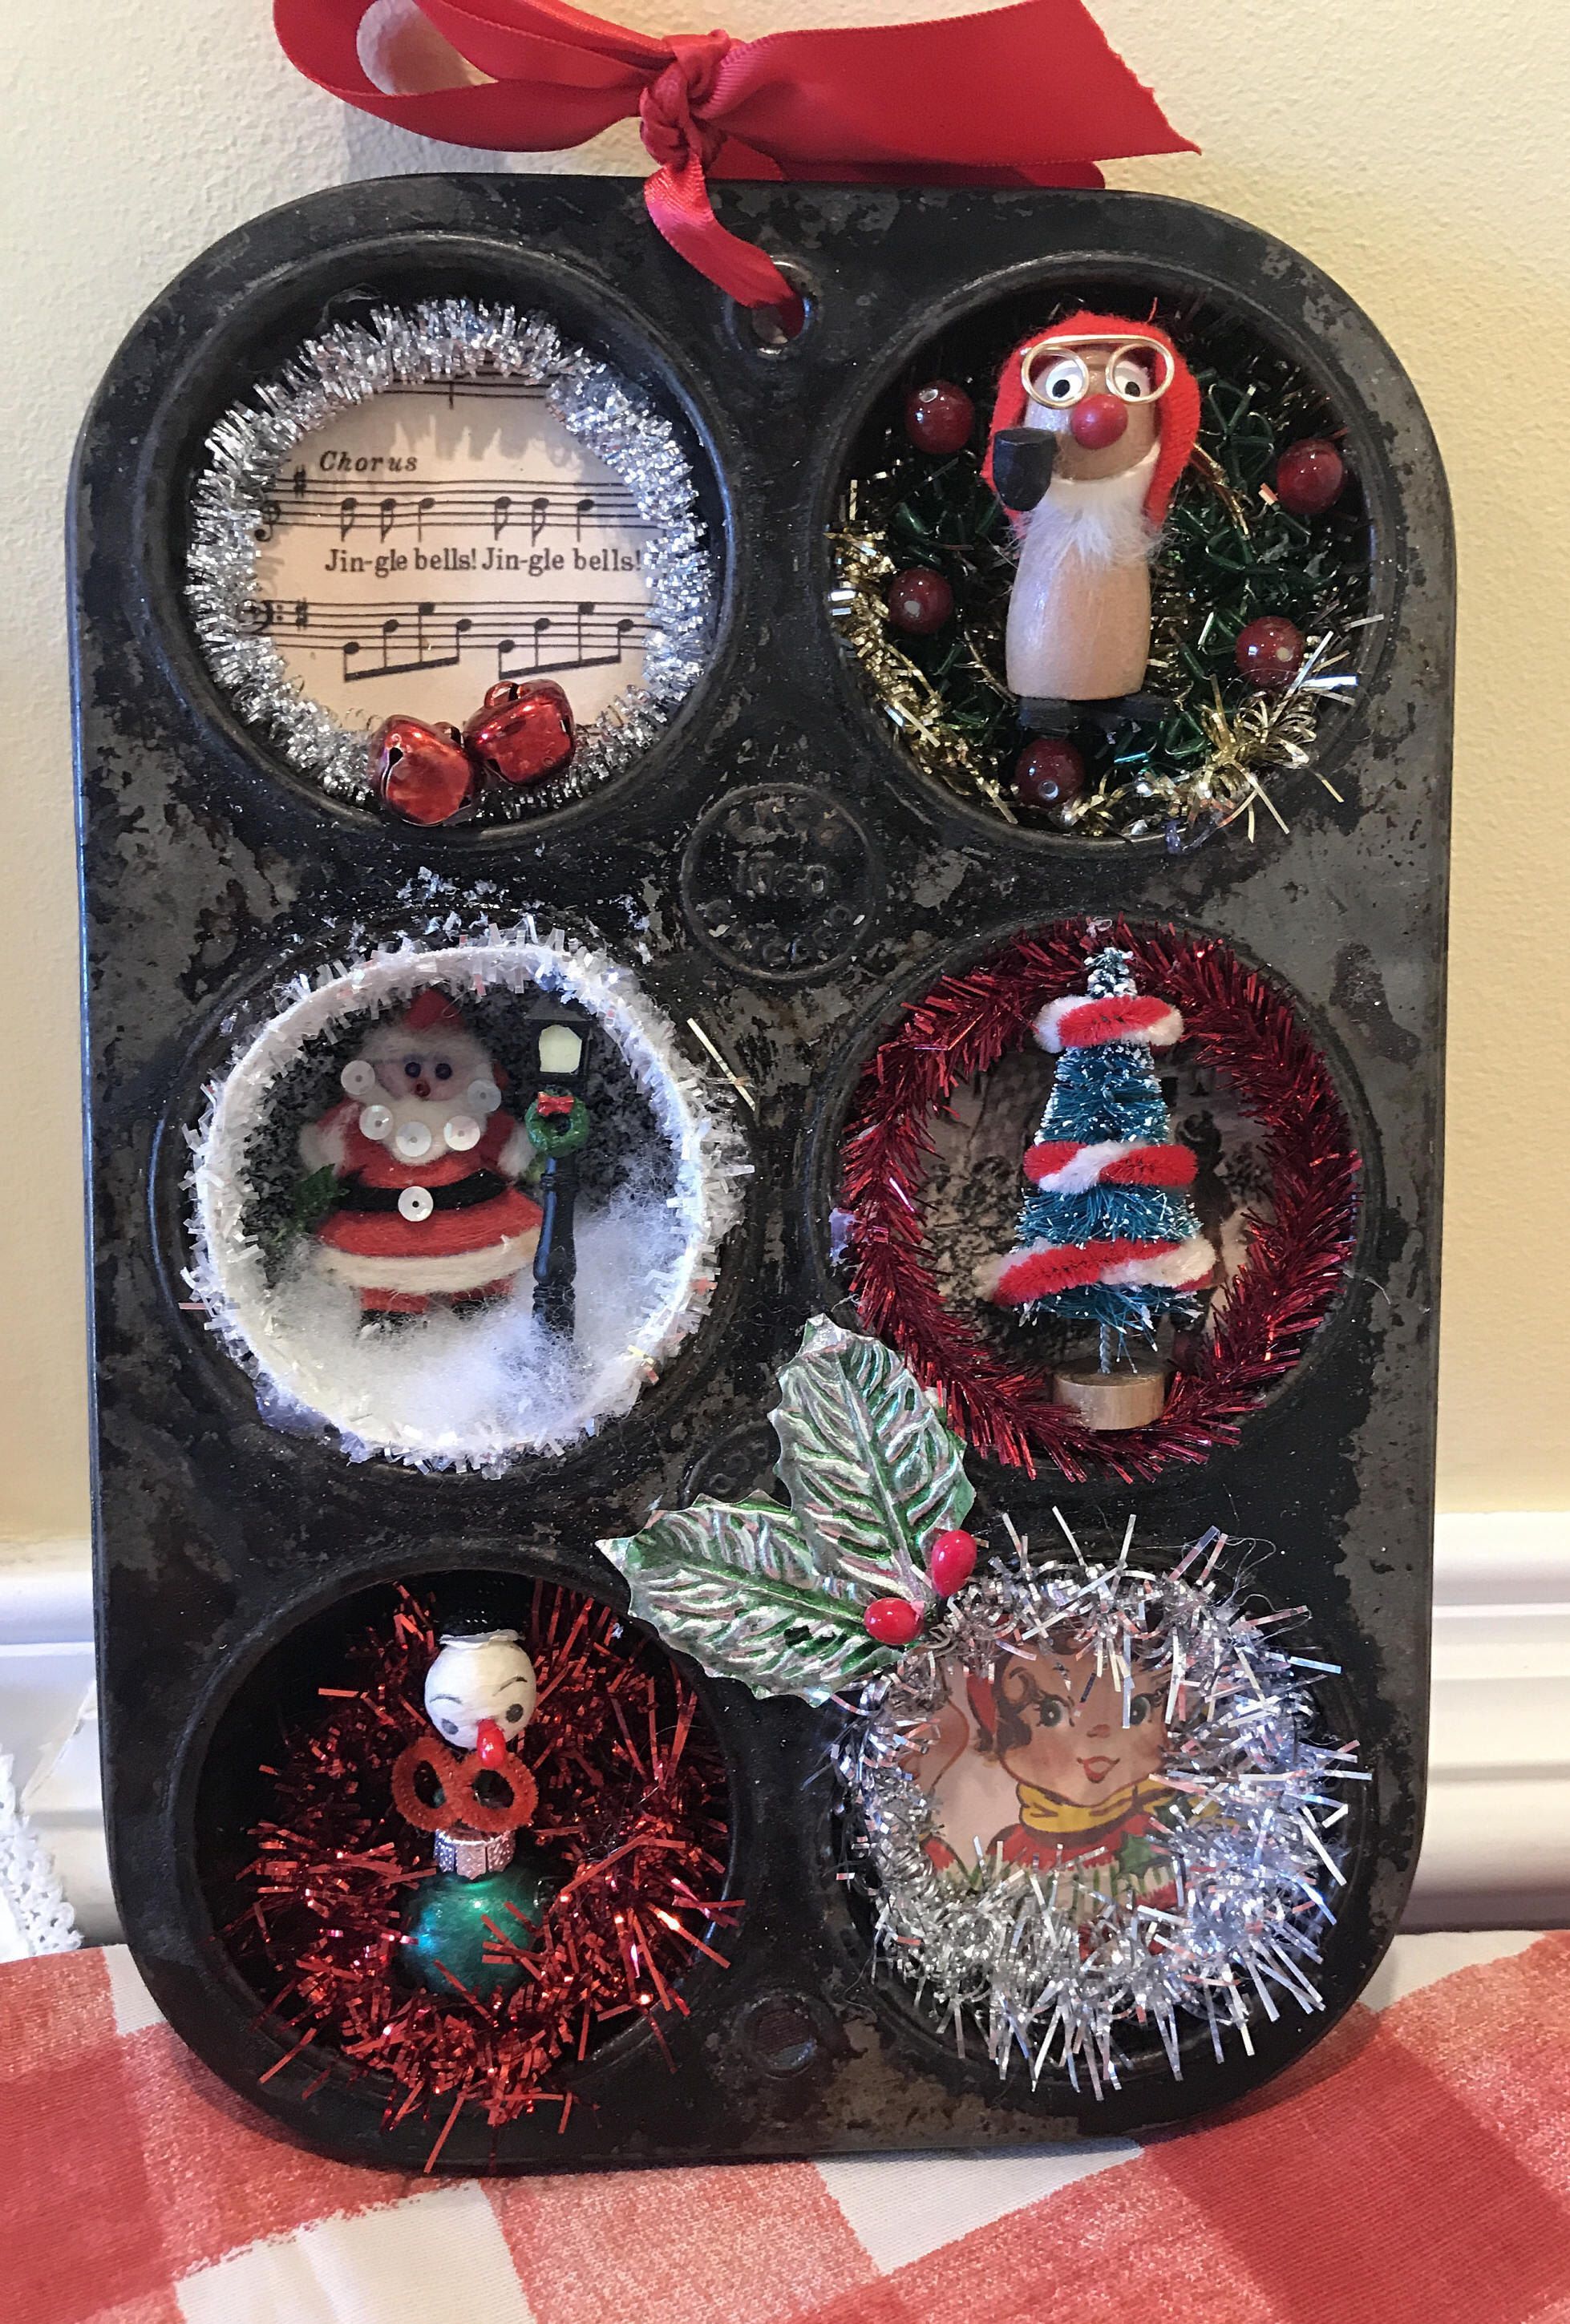 Vintage Baking Muffin Tin Christmas Vignette 1950s Retro Kitchen